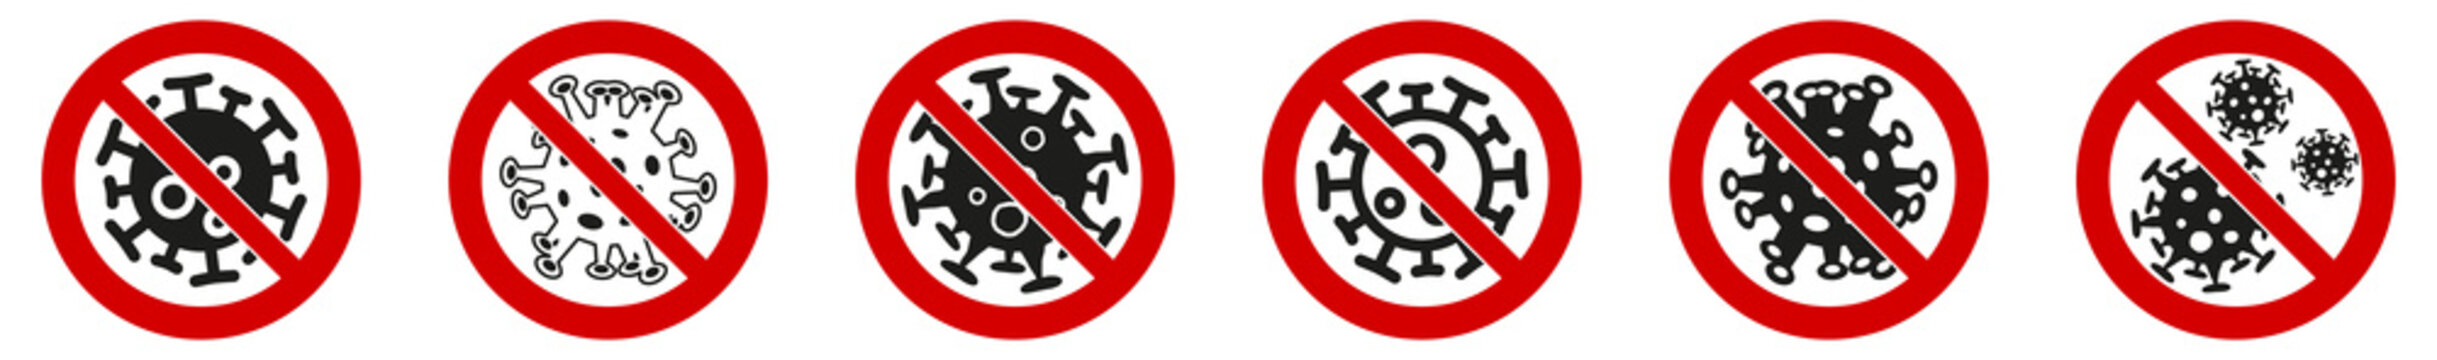 No virus sign, germ cell icon in red crossed circle, multiple versions. Can be used during coronavirus covid-19 outbreak prevention